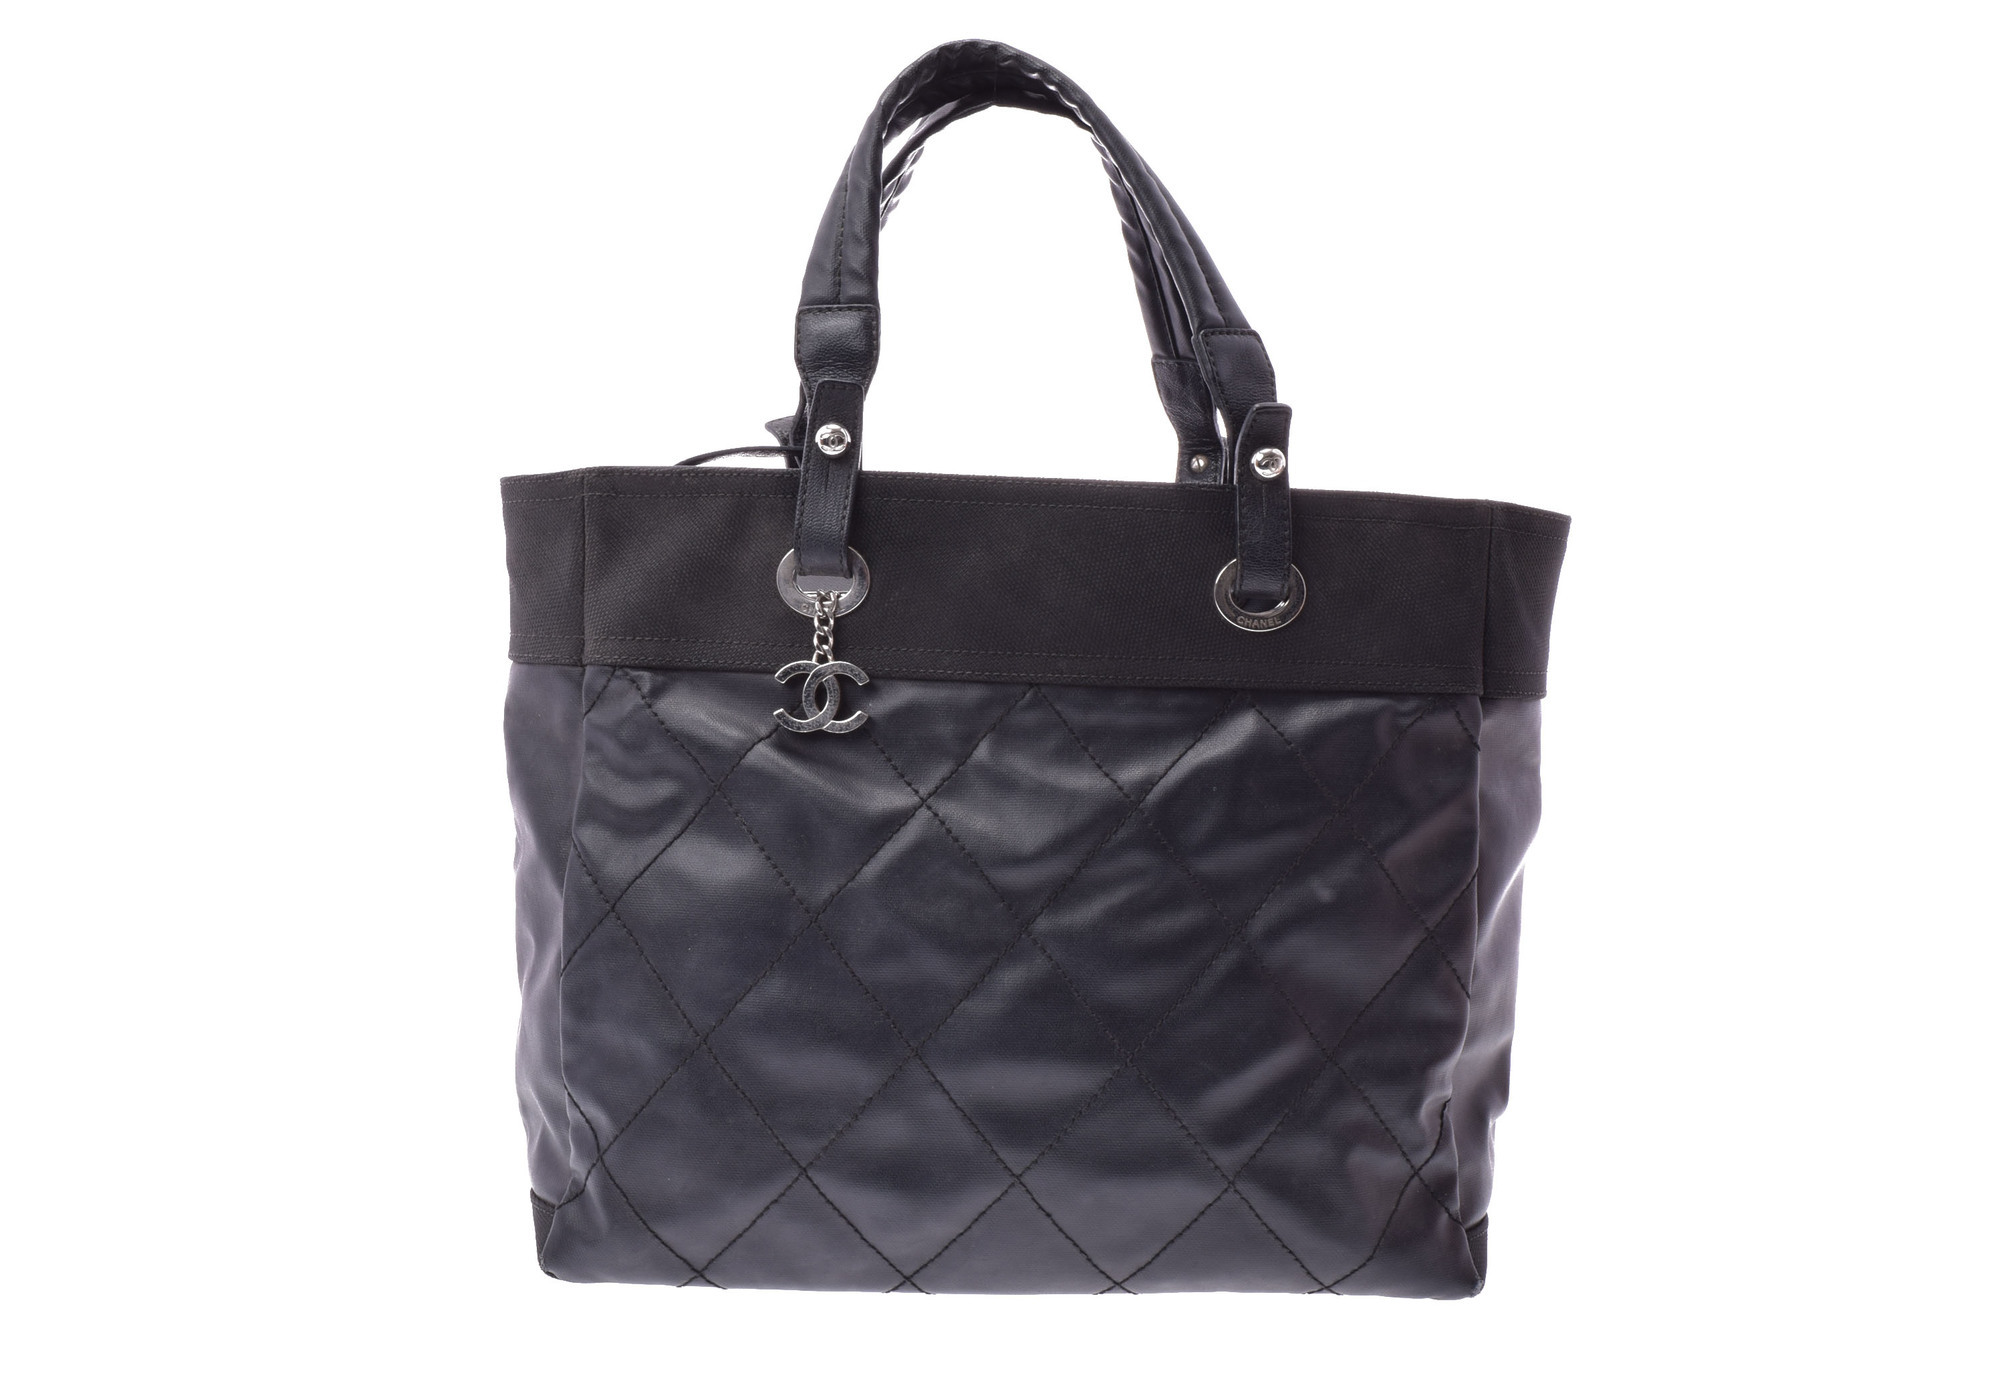 ef150eeb3768 Authentic Chanel Paris Biarritz Totebag MM Leather Tote Bag Blac  805000919631000